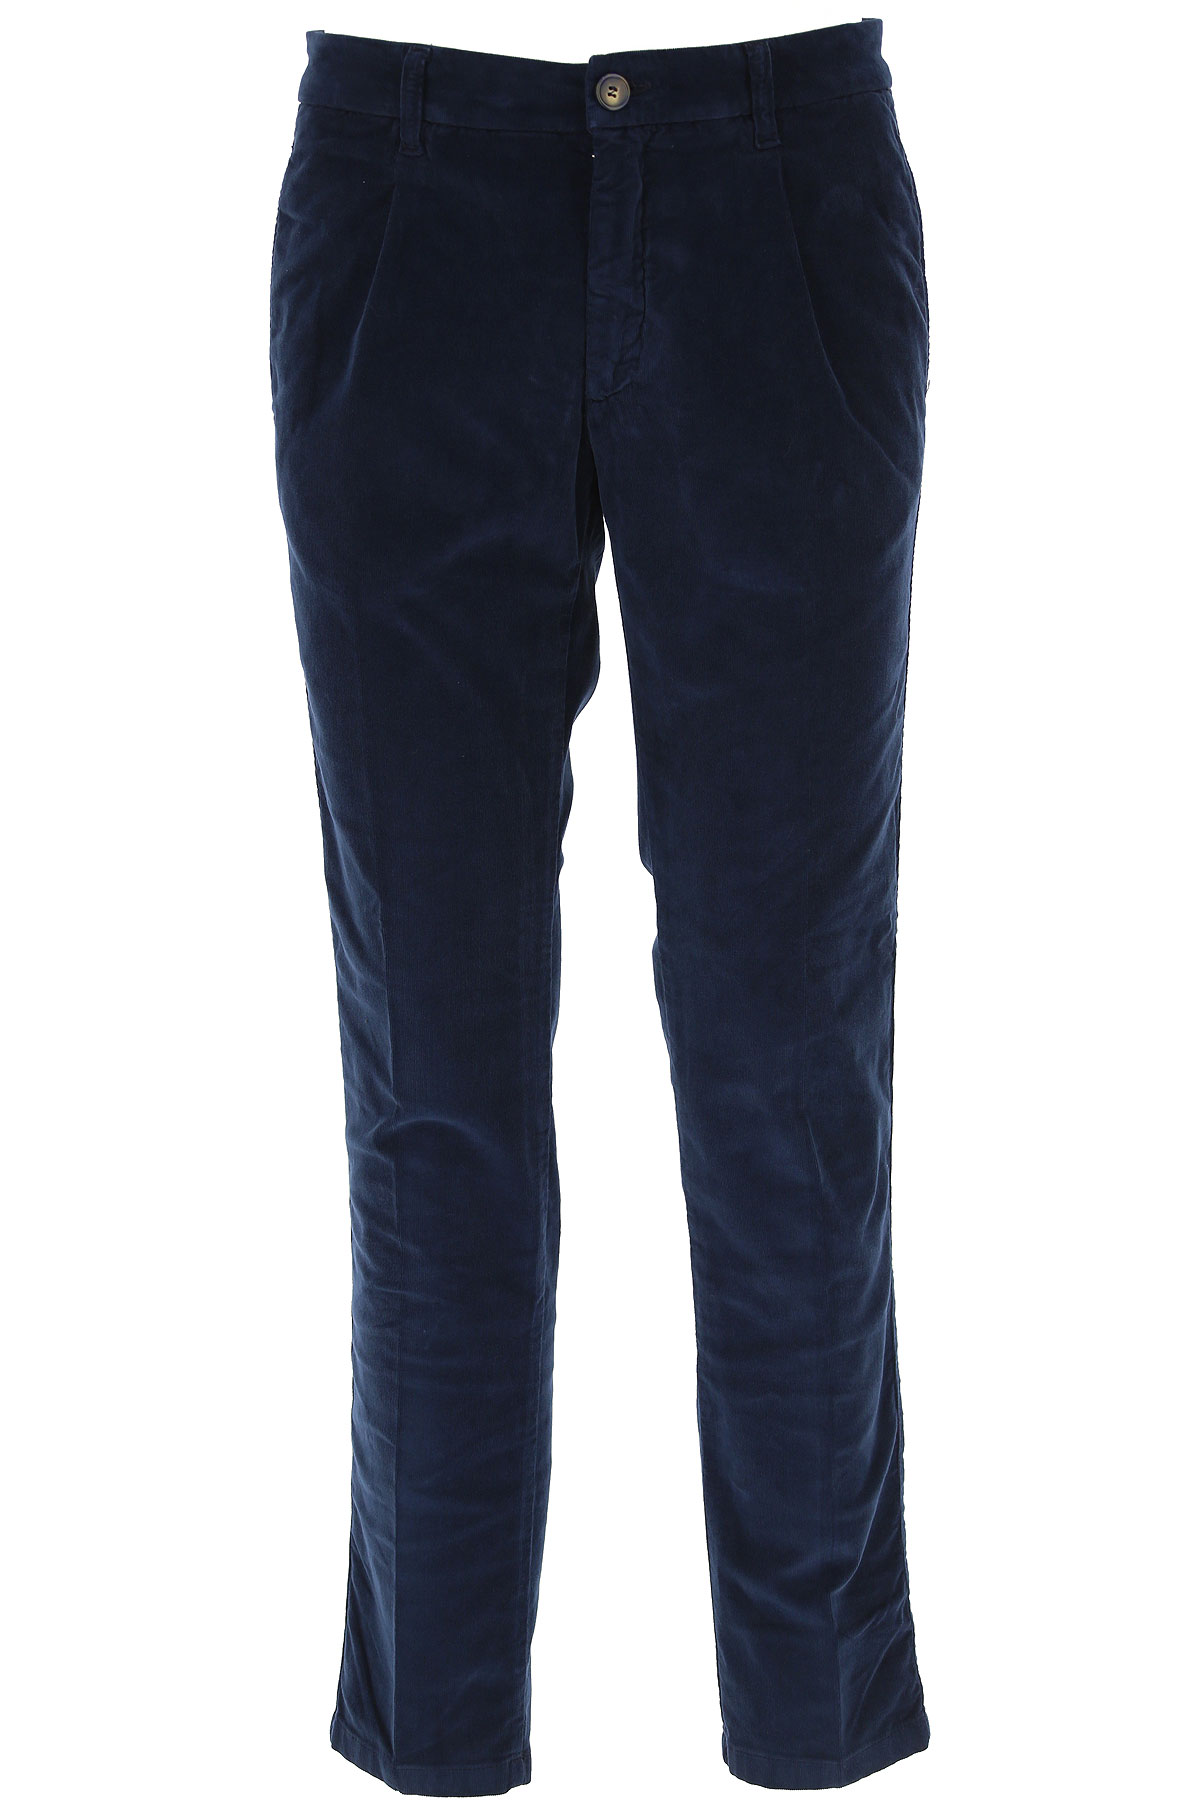 J.W. Brine Pants for Men, Navy Blue, Cotton, 2019, 30 34 36